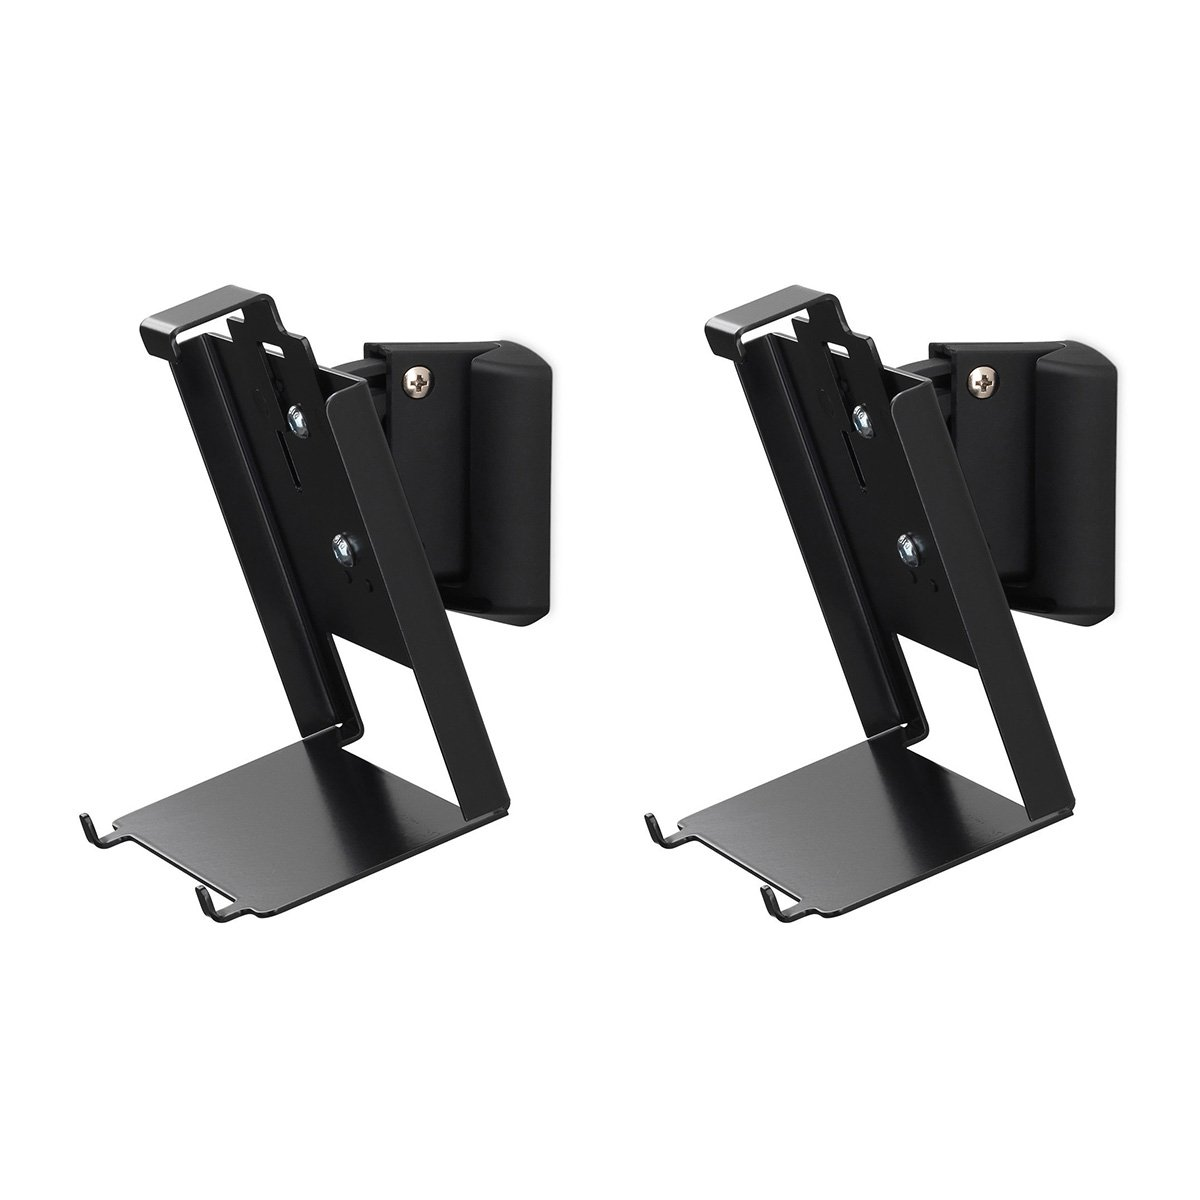 SoundXtra Wall Mounts for Bose SoundTouch 20 - Pair (Black)